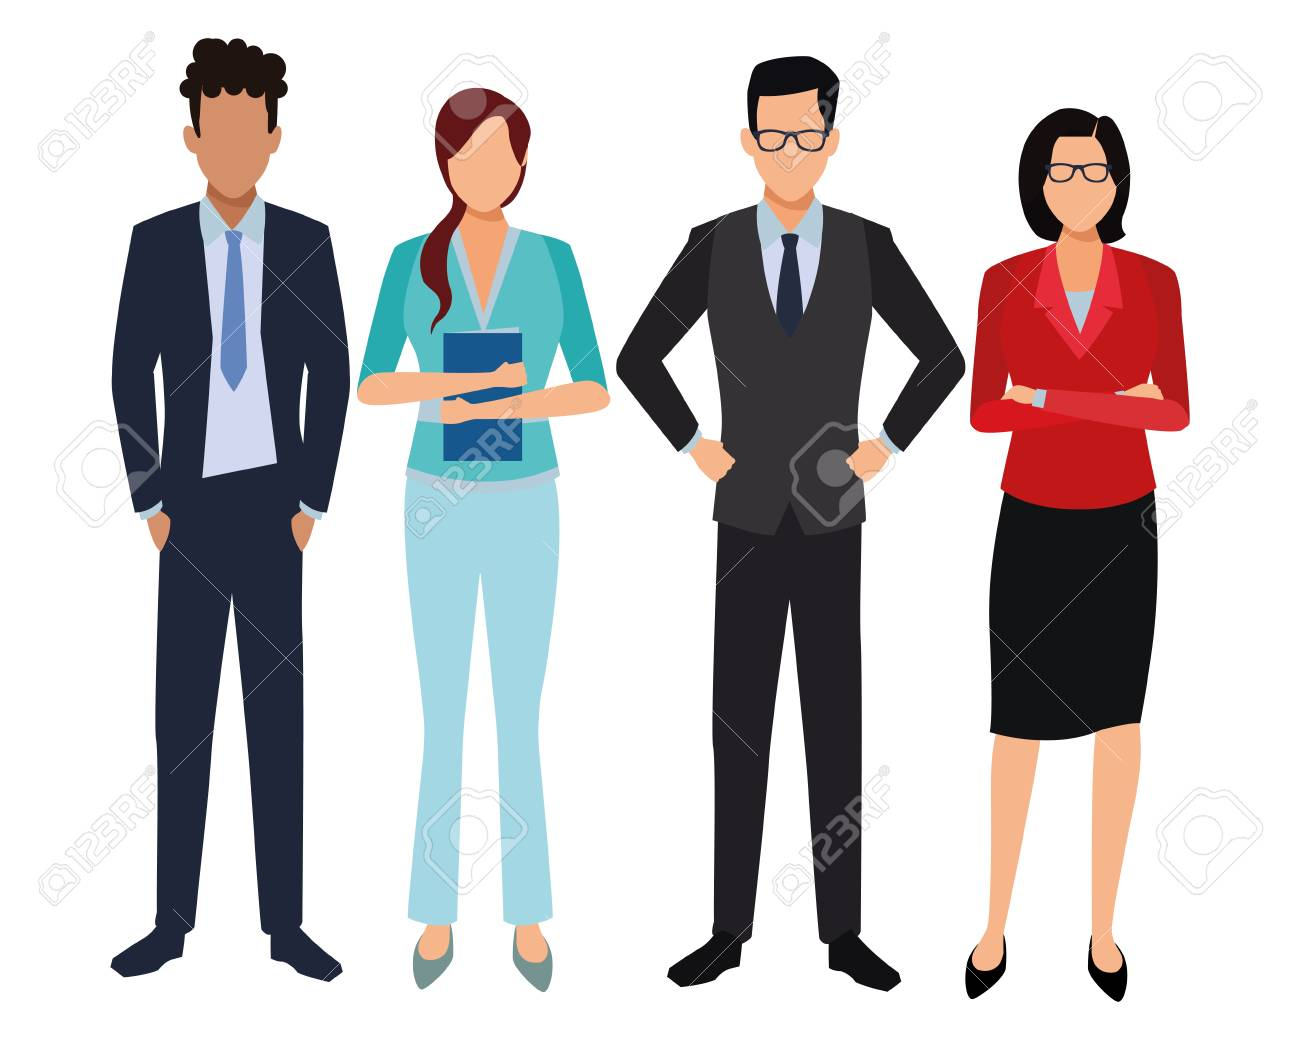 executive business coworkers cartoon vector illustration graphic design - 123250302